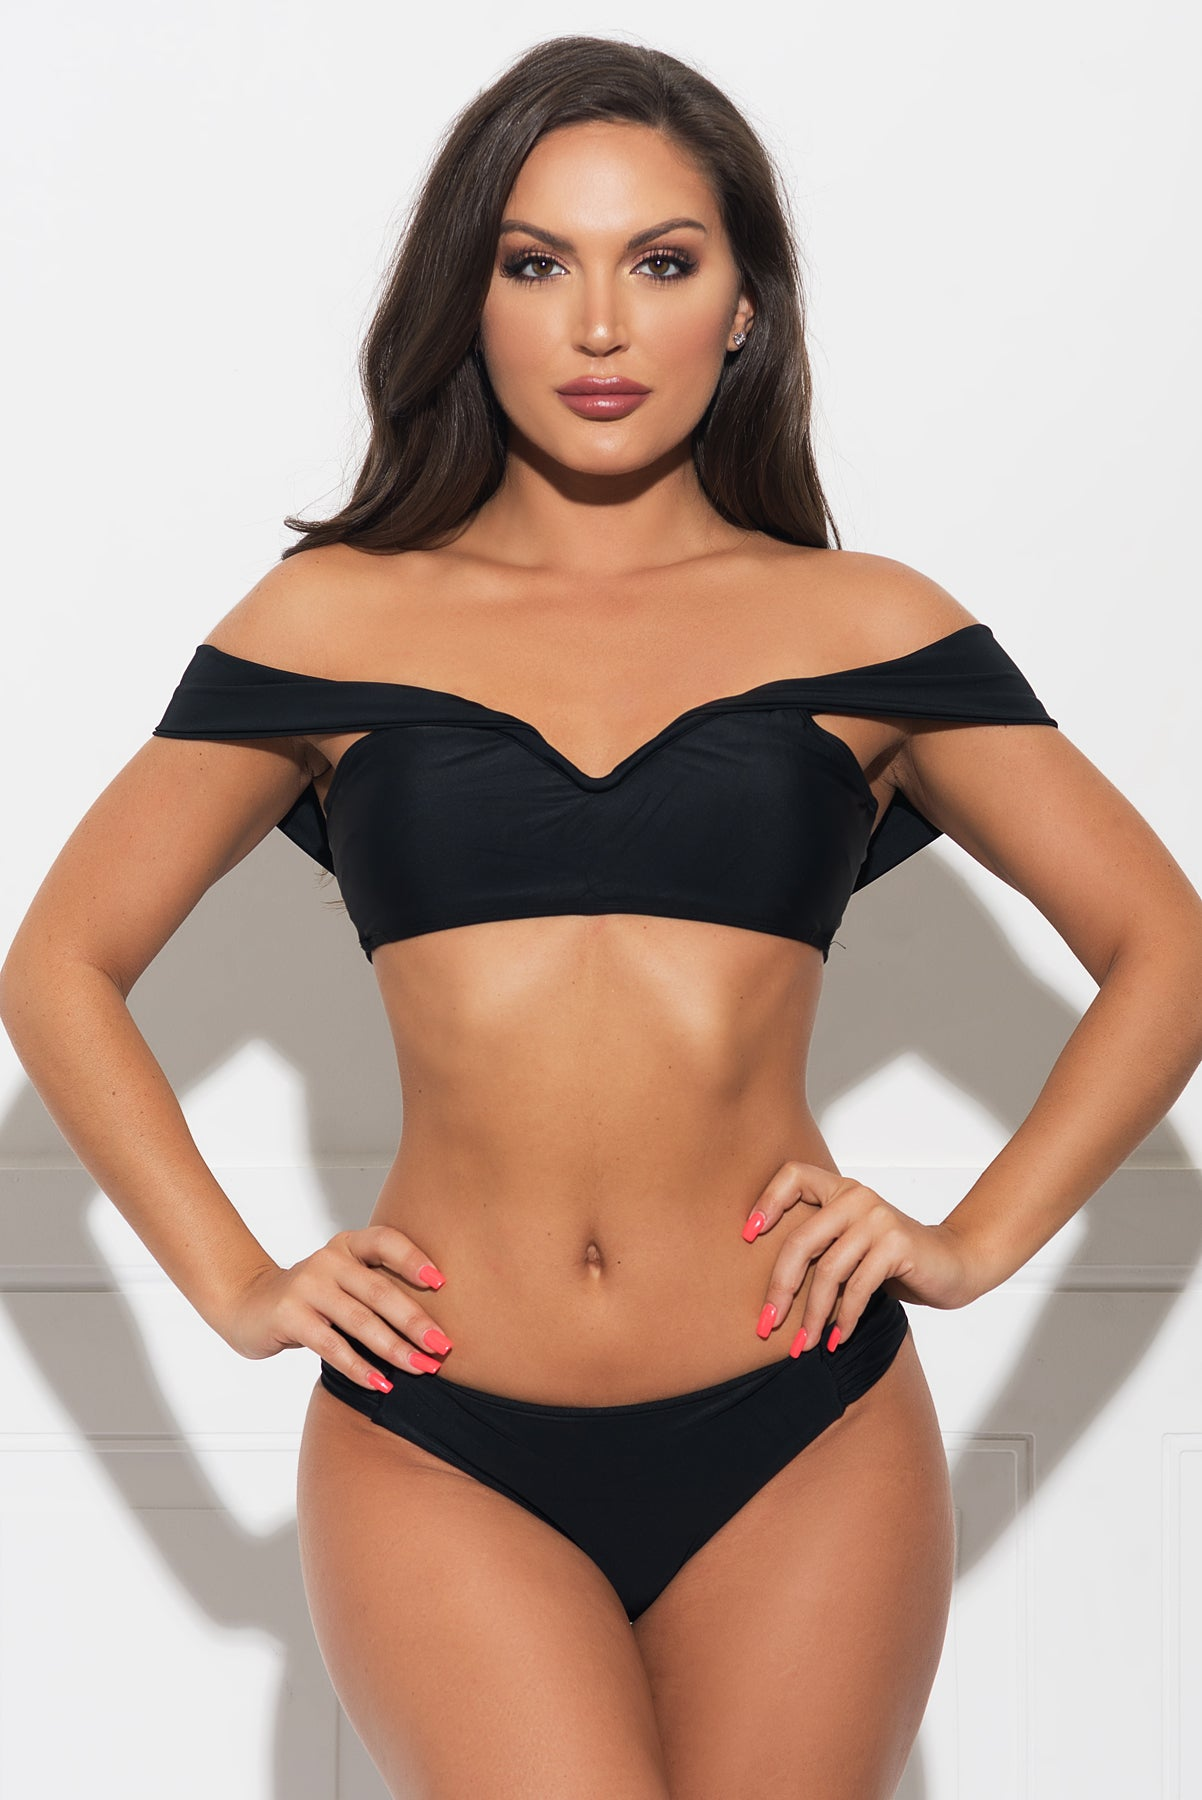 Honeymoon Island Two Piece Swimsuit - Black